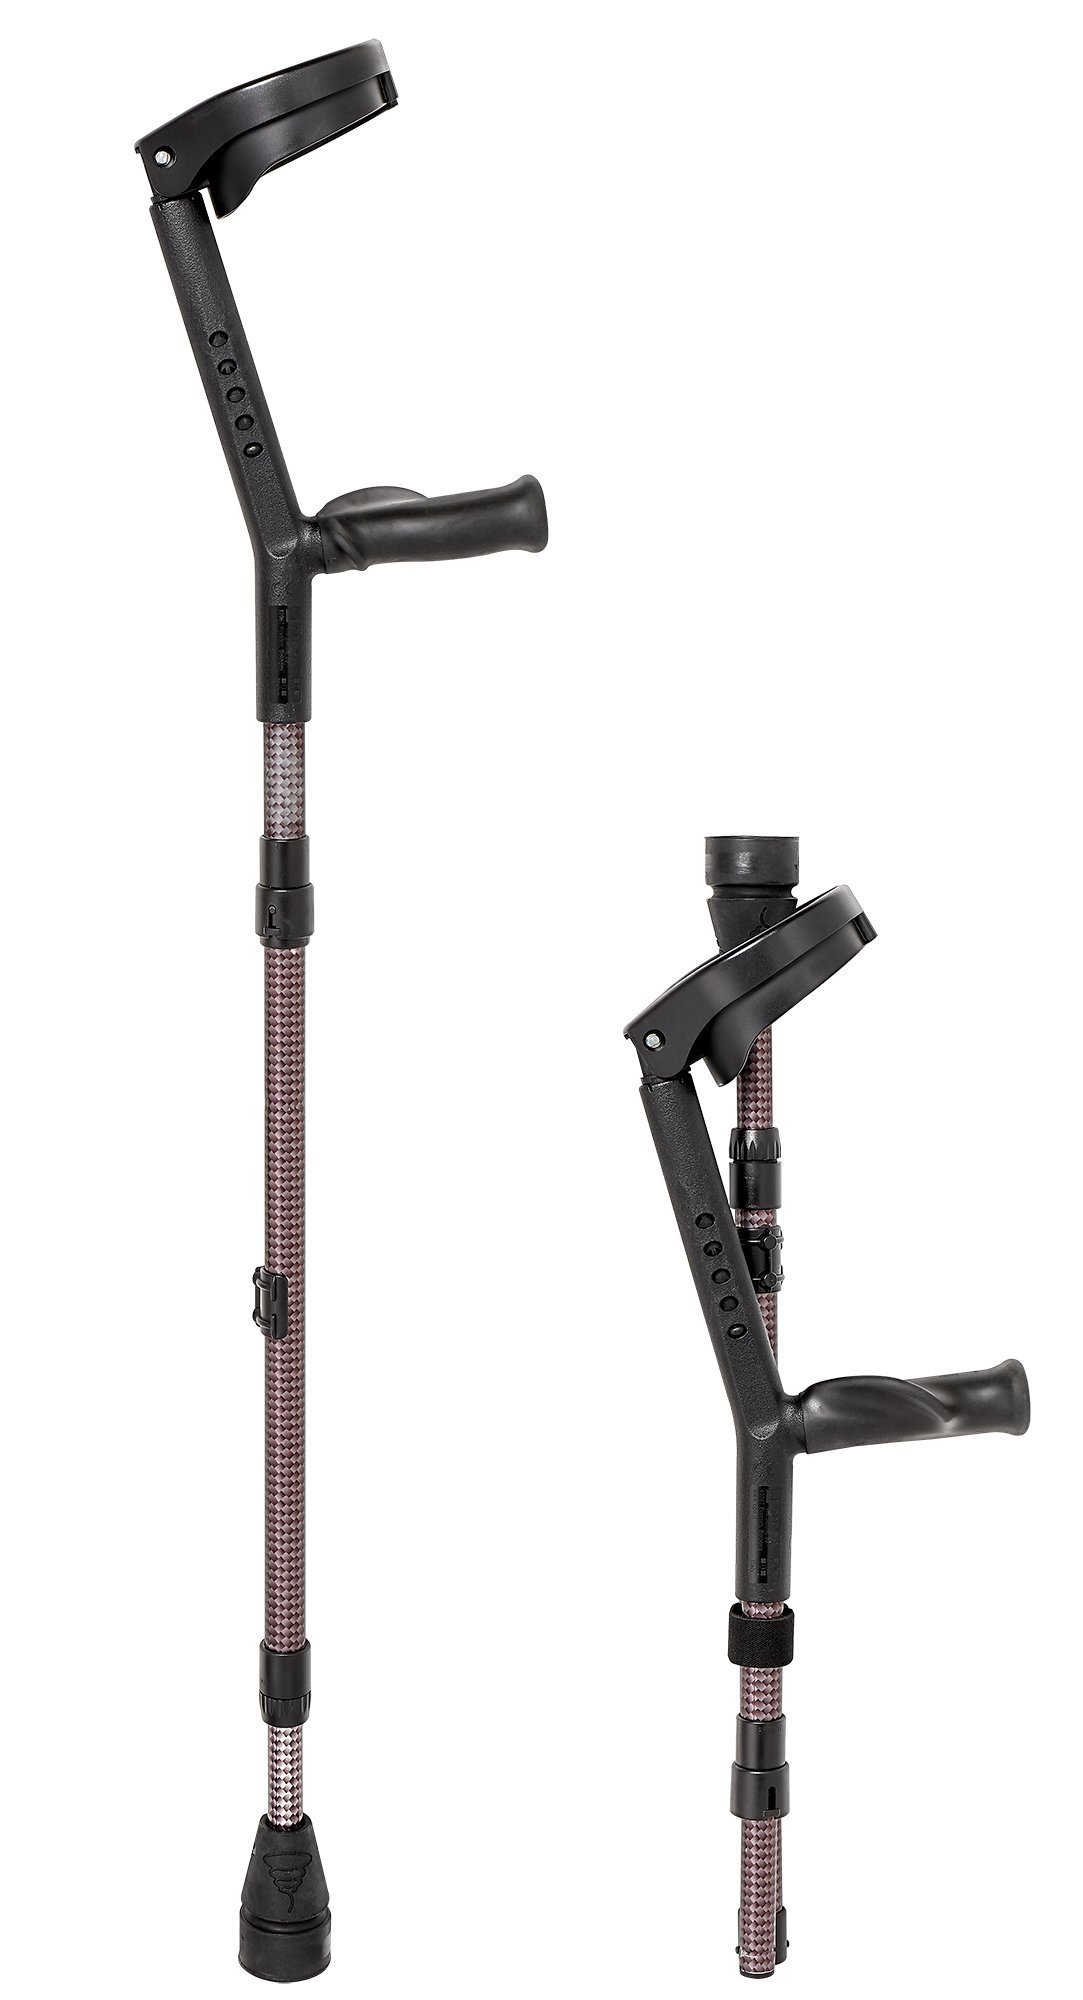 Thomas Fetterman O.P.O. Folding Forearm Travel Crutches Pair with Tornado Gel Tip For Adults Under 225 Pounds, Gray, Pair